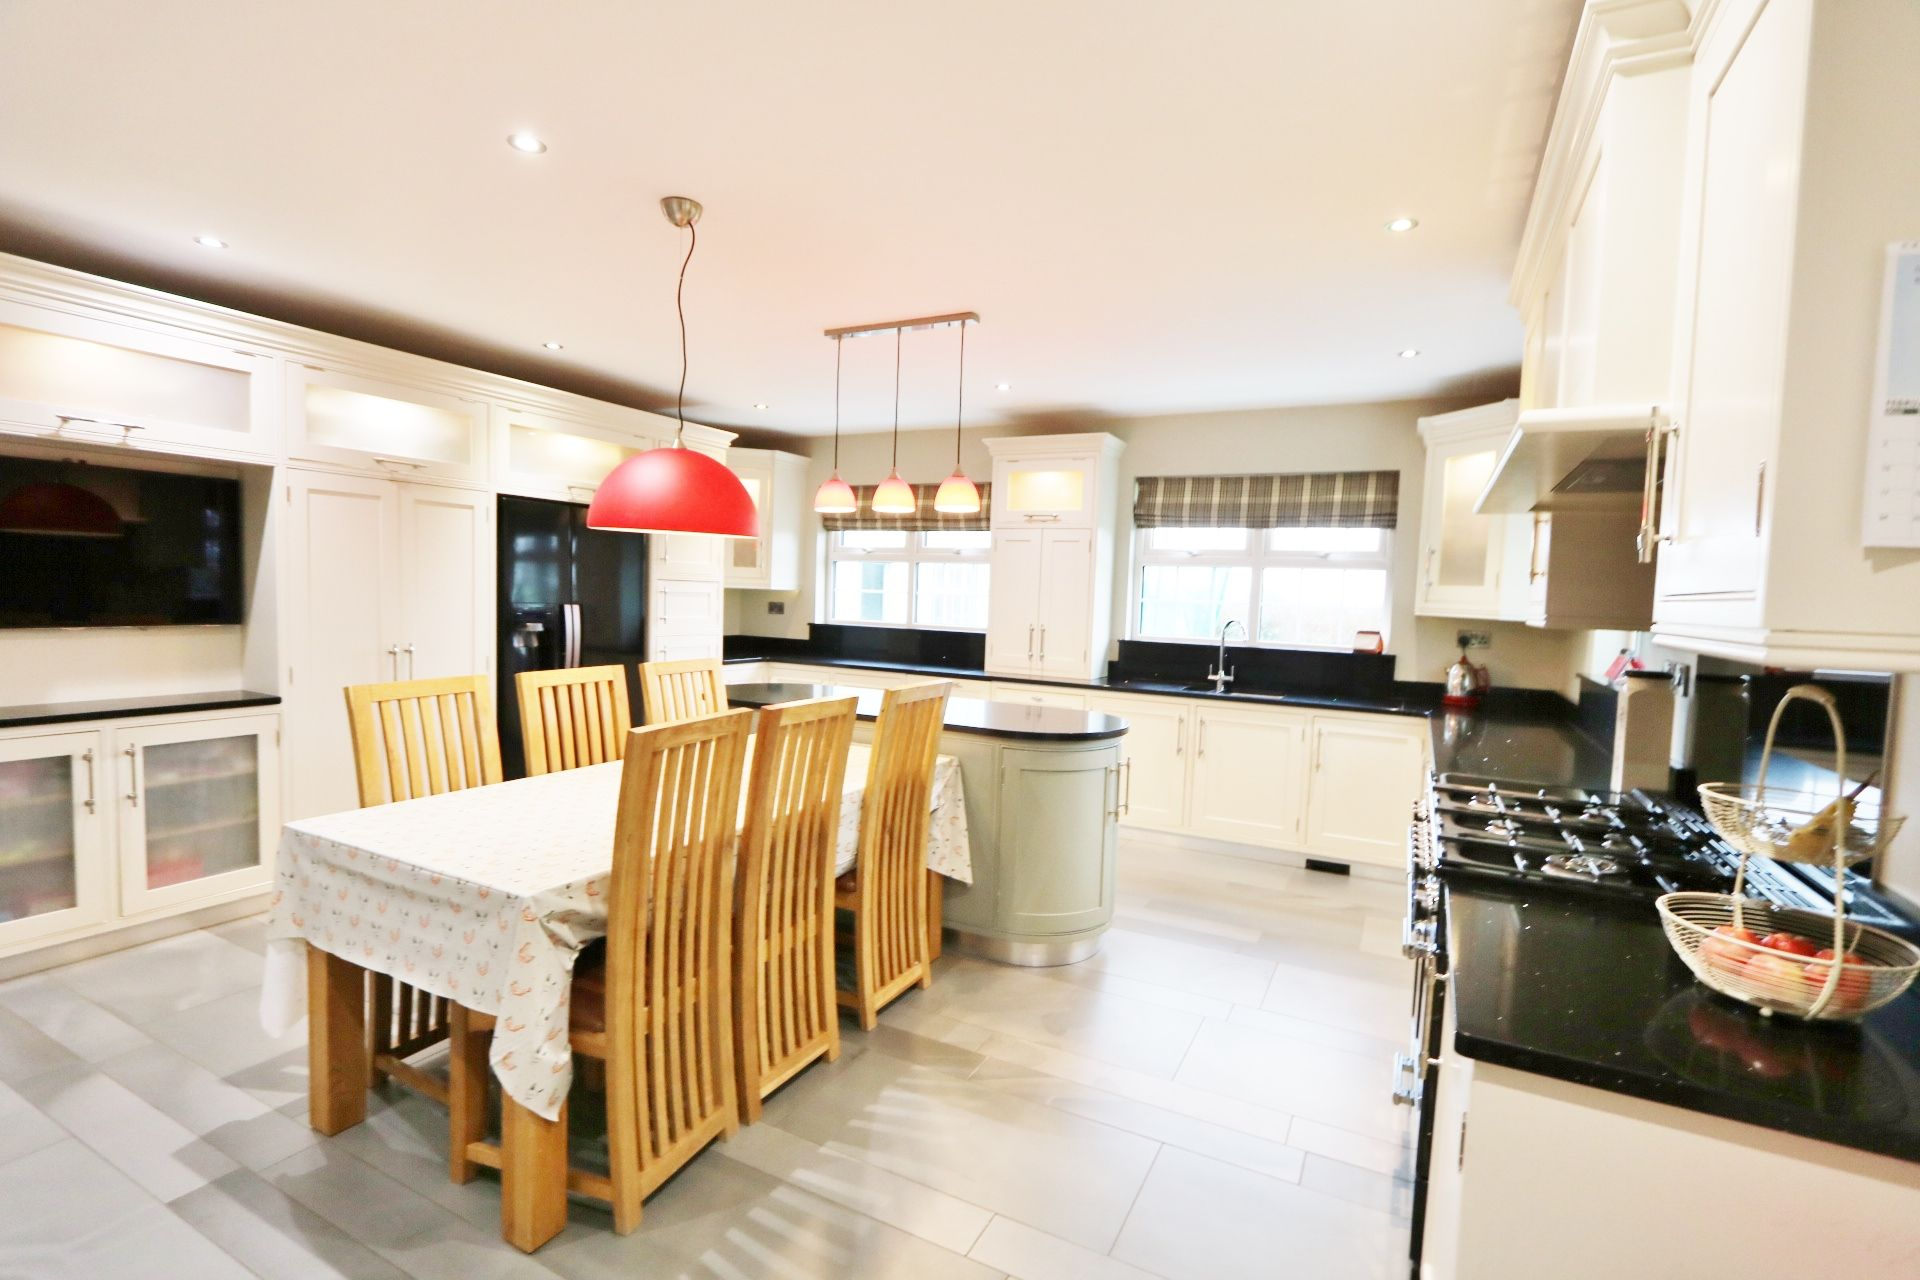 5 bedroom detached house Under Offer in Crumlin - Photograph 7